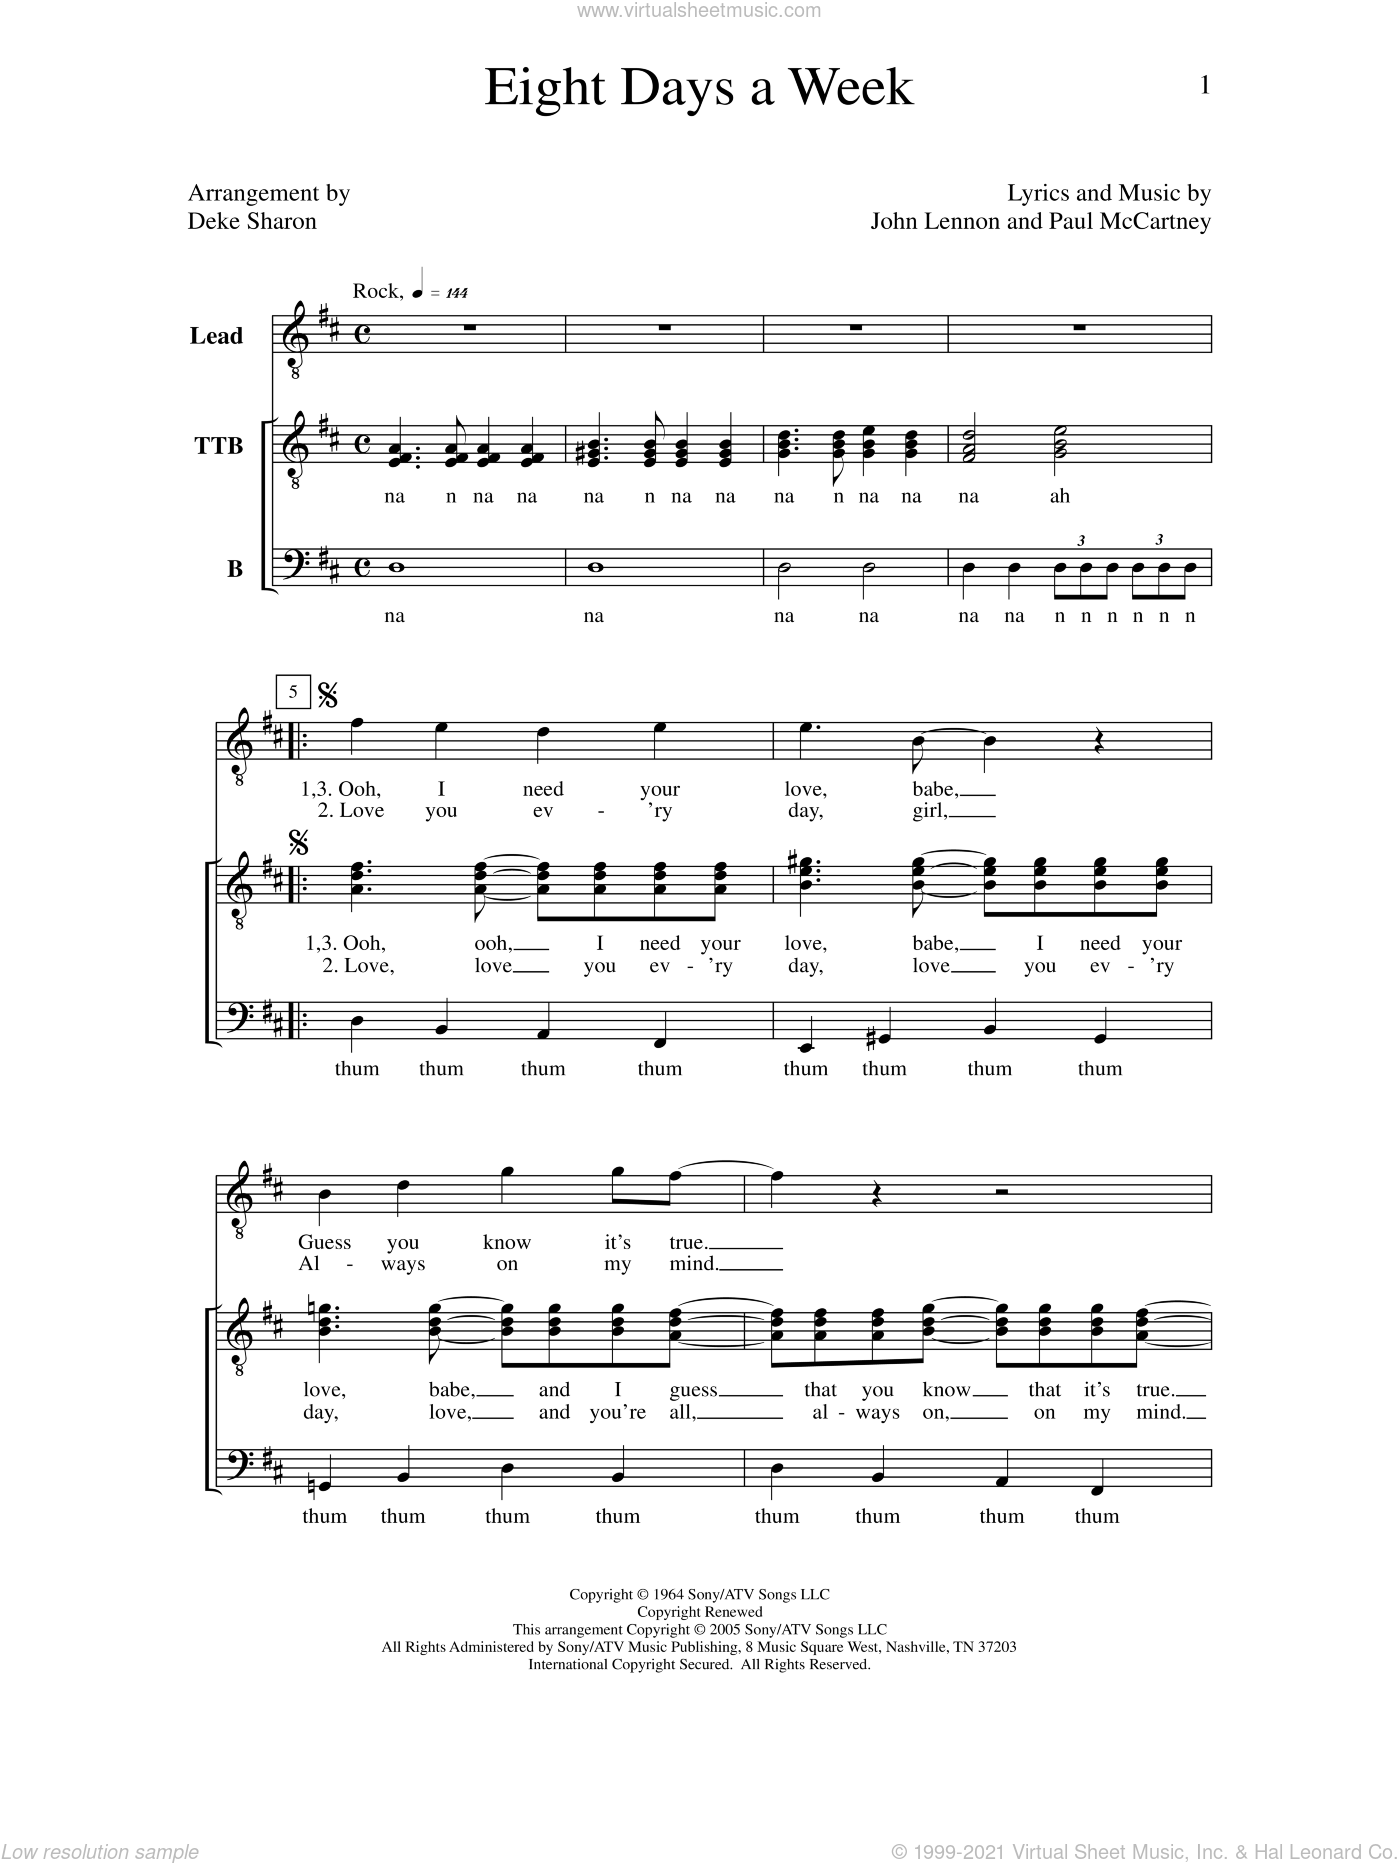 Eight Days A Week sheet music for choir by Deke Sharon, Anne Raugh, John Lennon, Paul McCartney and The Beatles. Score Image Preview.